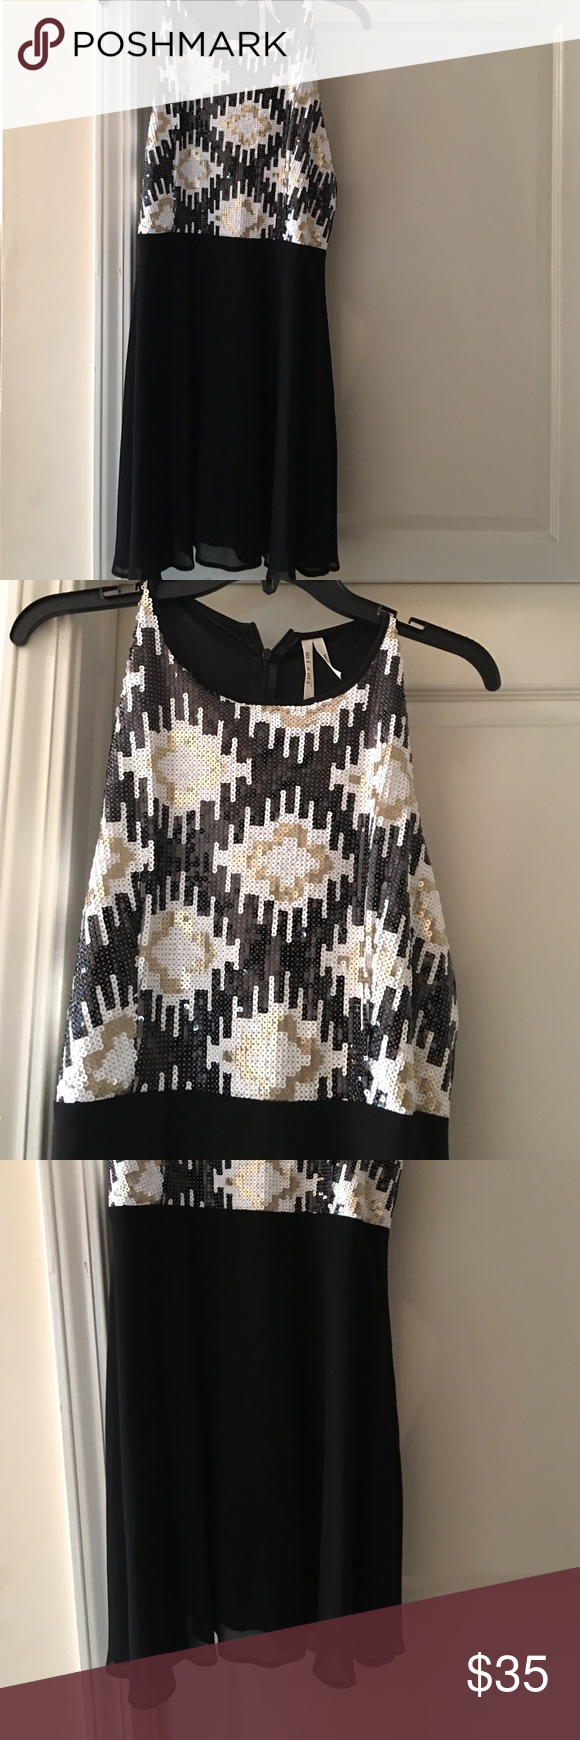 Mi Ami black and sequin top dress If you are already looking for the perfect New Years dress here it is! Mi Ami Dresses Mini